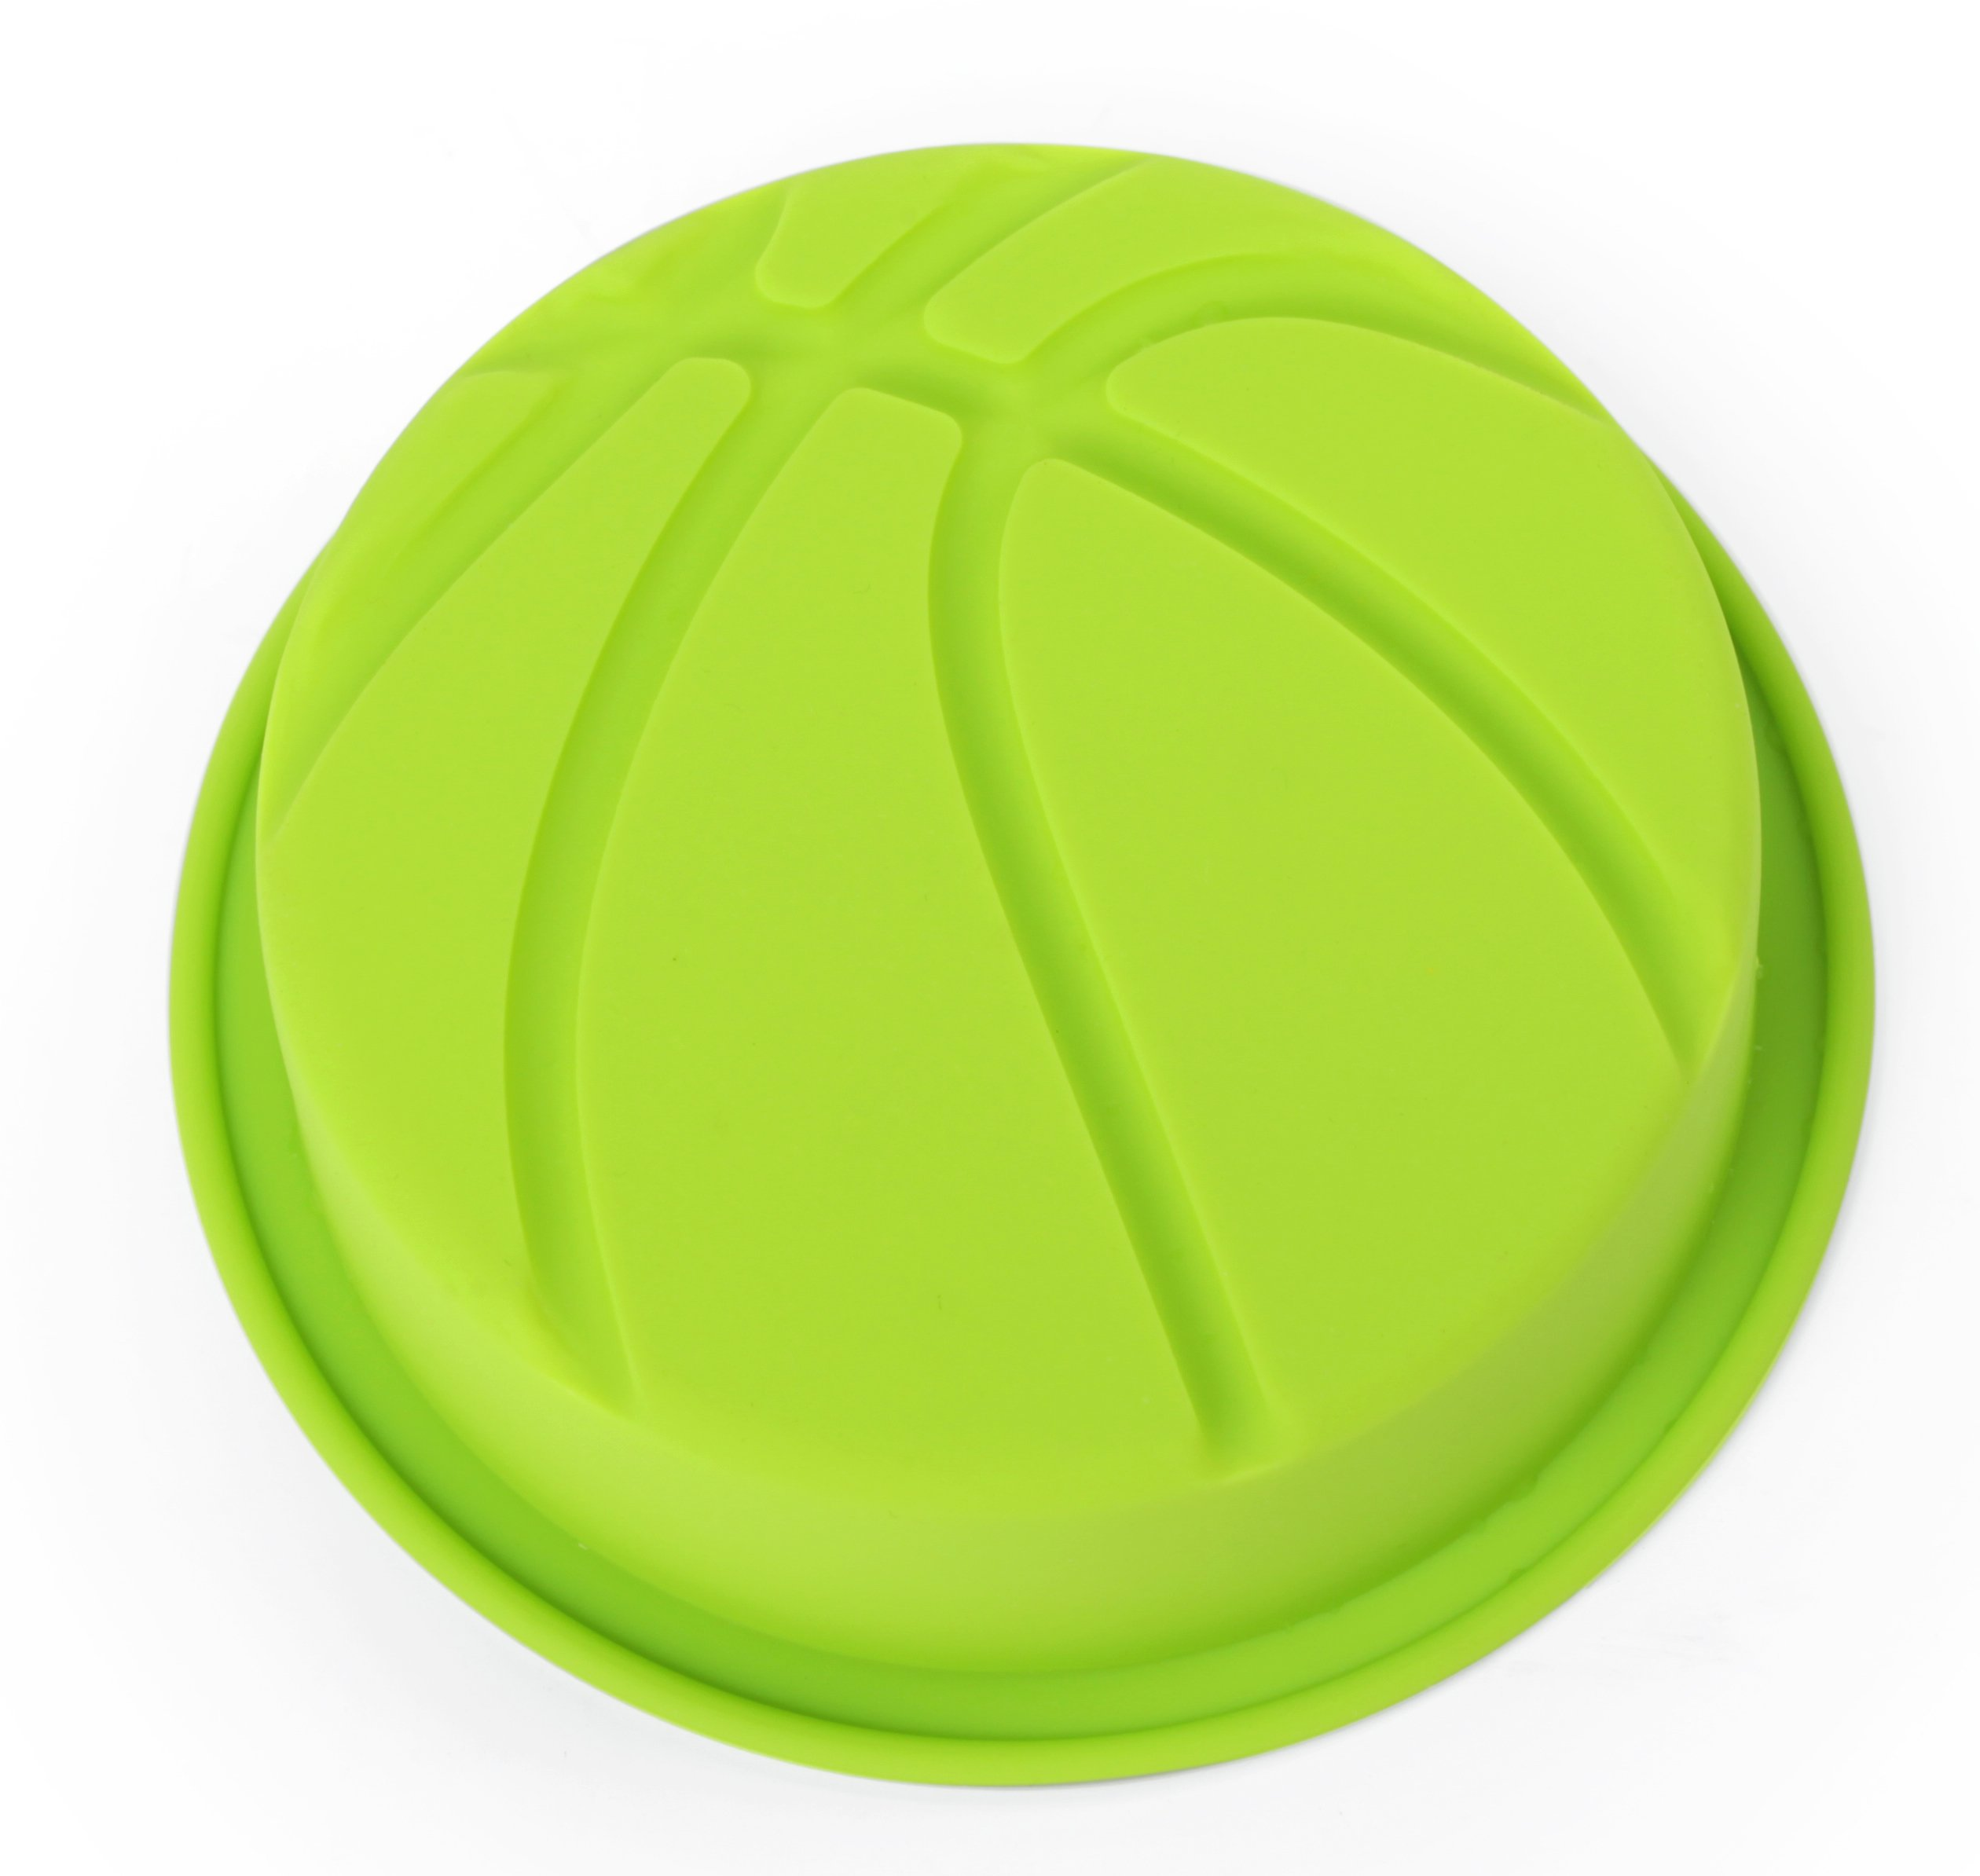 Home Value Colorful Silicone Sports Ball Set'' Soccer, Tennis, Baseball, Basketball '' Cake Mold, Assorted Colors (HVCOOKIECUTSC09) by Value Home (Image #6)